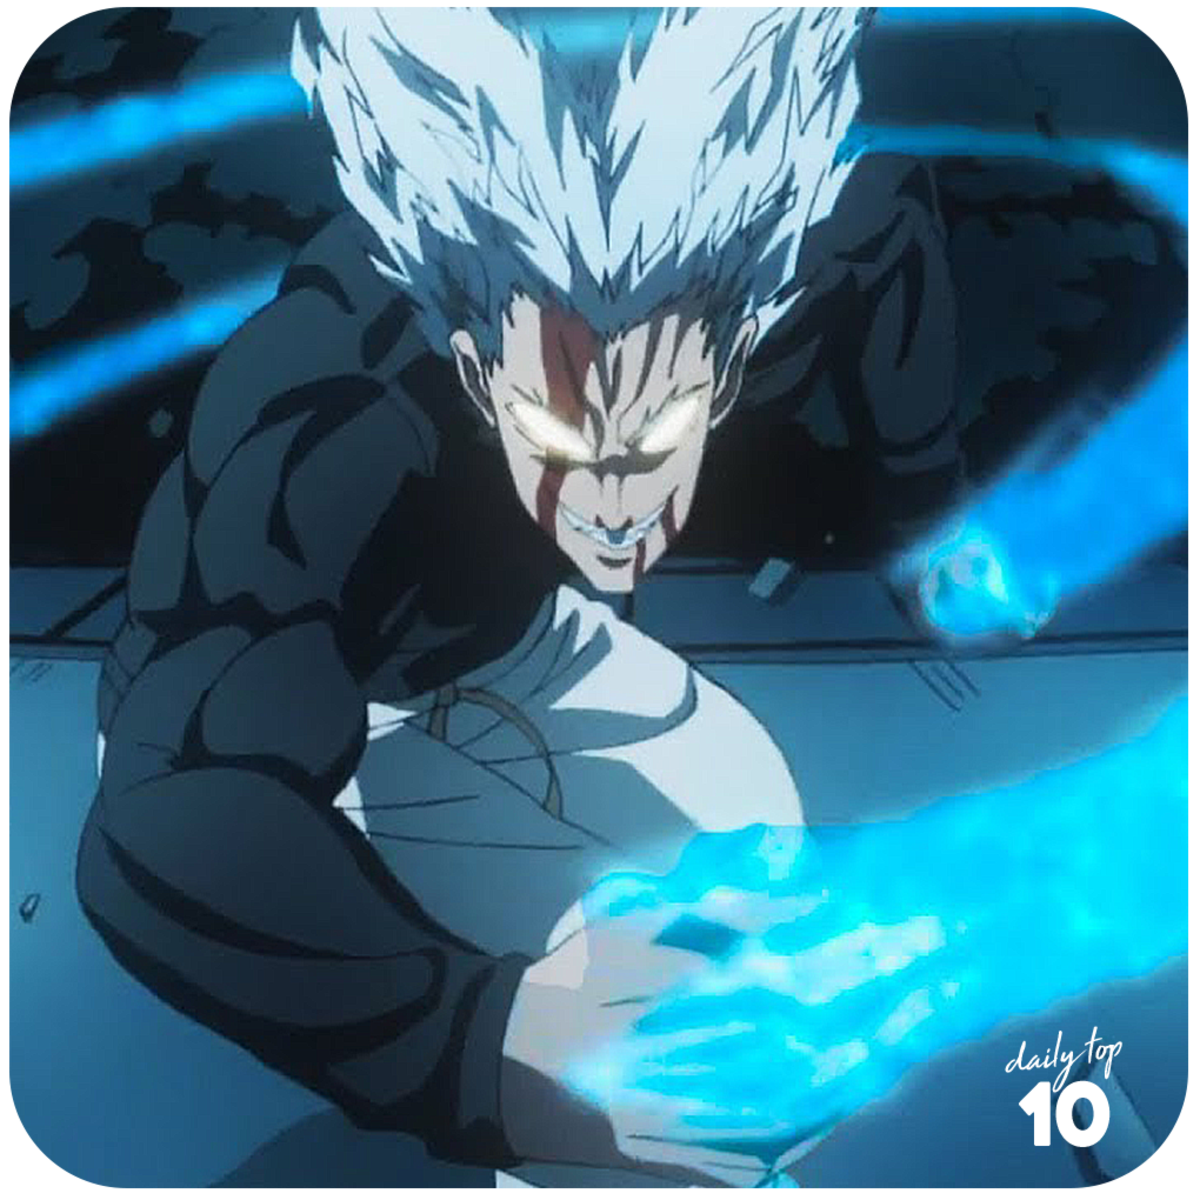 Garou unleashing his martial art technique